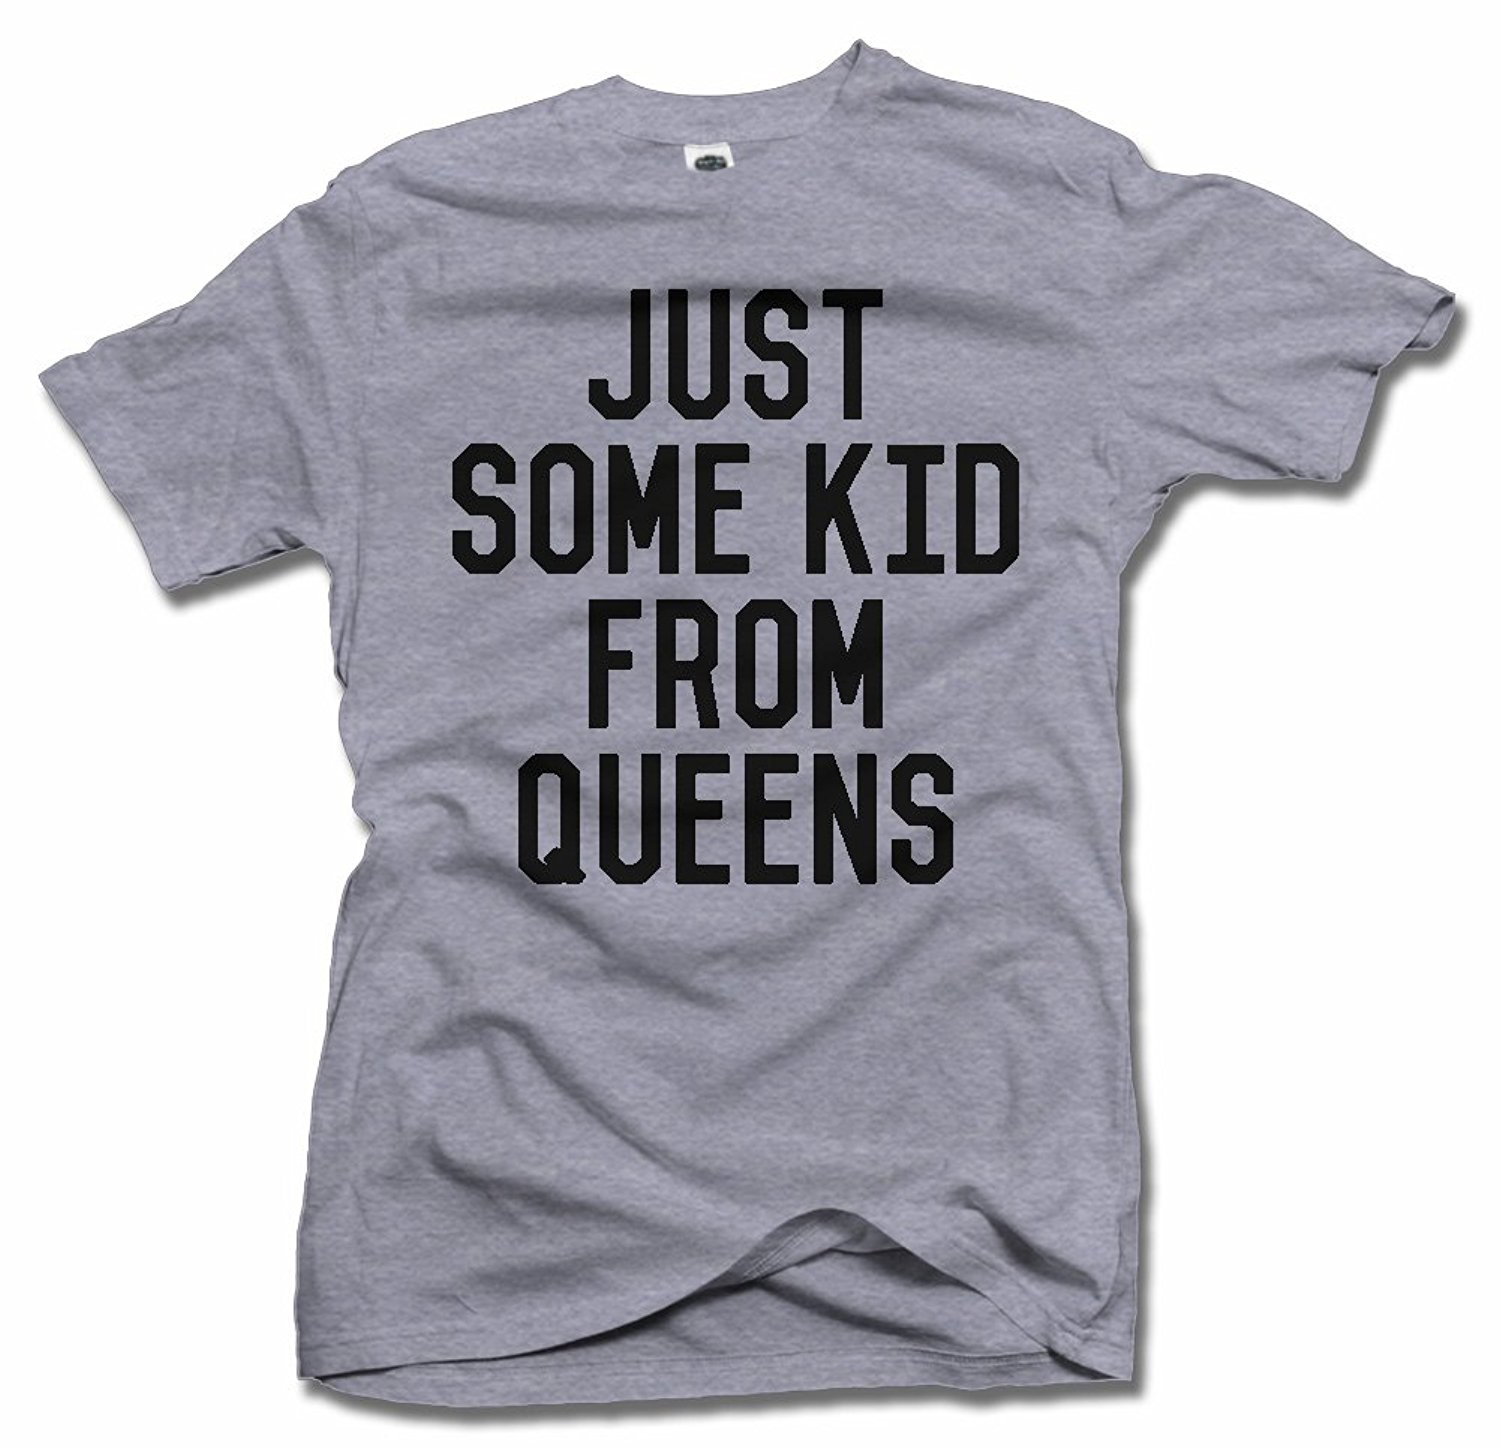 T shirt design queens ny - Just Some Kid From Queens Gold Man T Shirt China Mainland